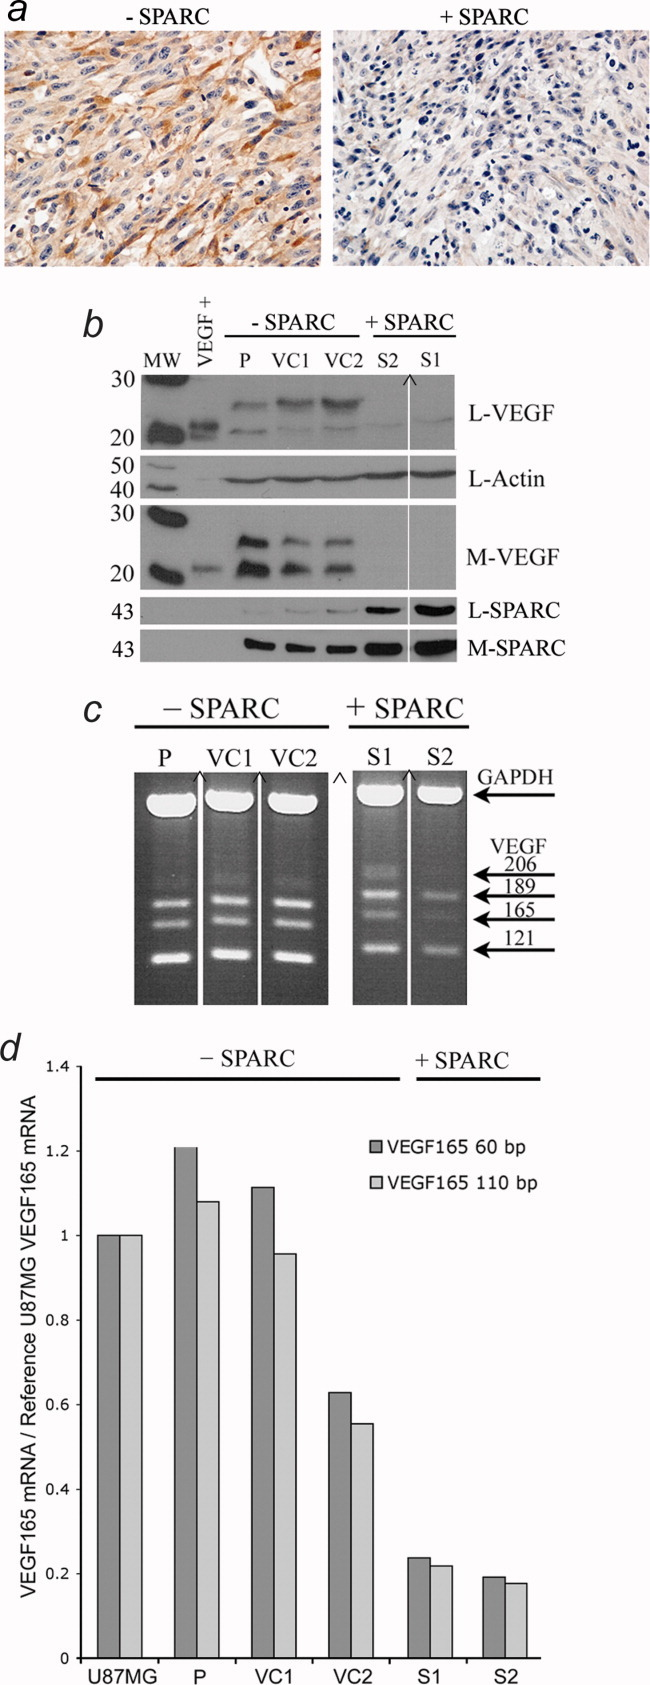 Immunohistochemical, Western blot and RT-PCR analysis of VEGF protein and transcripts in control- (−SPARC) and SPARC- (+SPARC) transfected clones. ( a ) Representative tumor sections immunohistochemically stained for VEGF expression (×40). Note the decreased VEGF expression in the SPARC-expressing tumors. ( b ) Control and SPARC-expressing spheroids were assessed for VEGF and SPARC expression and secretion by Western blot analysis. L: lysate, M: medium. The same blot was used for all lysate analyses. Actin detection was used as a loading control. Note that increased SPARC expression correlated with decreased VEGF expression and secretion. ( c ) RT-PCR was performed to detect all 4 major VEGF isoforms as indicated. ( b and c ) (∧) Indicates that the signal is on the same gel but moved closer. ( d ) Real-time RT-PCR analysis of the VEGF165 isoform. Note that enhanced SPARC expression is associated with decreased VEGF165 transcript abundance. P-parental clonal U87MG-derived cell line, VC1- and VC1-vector control cell lines, S1- and S2- SPARC-transfected cell lines.